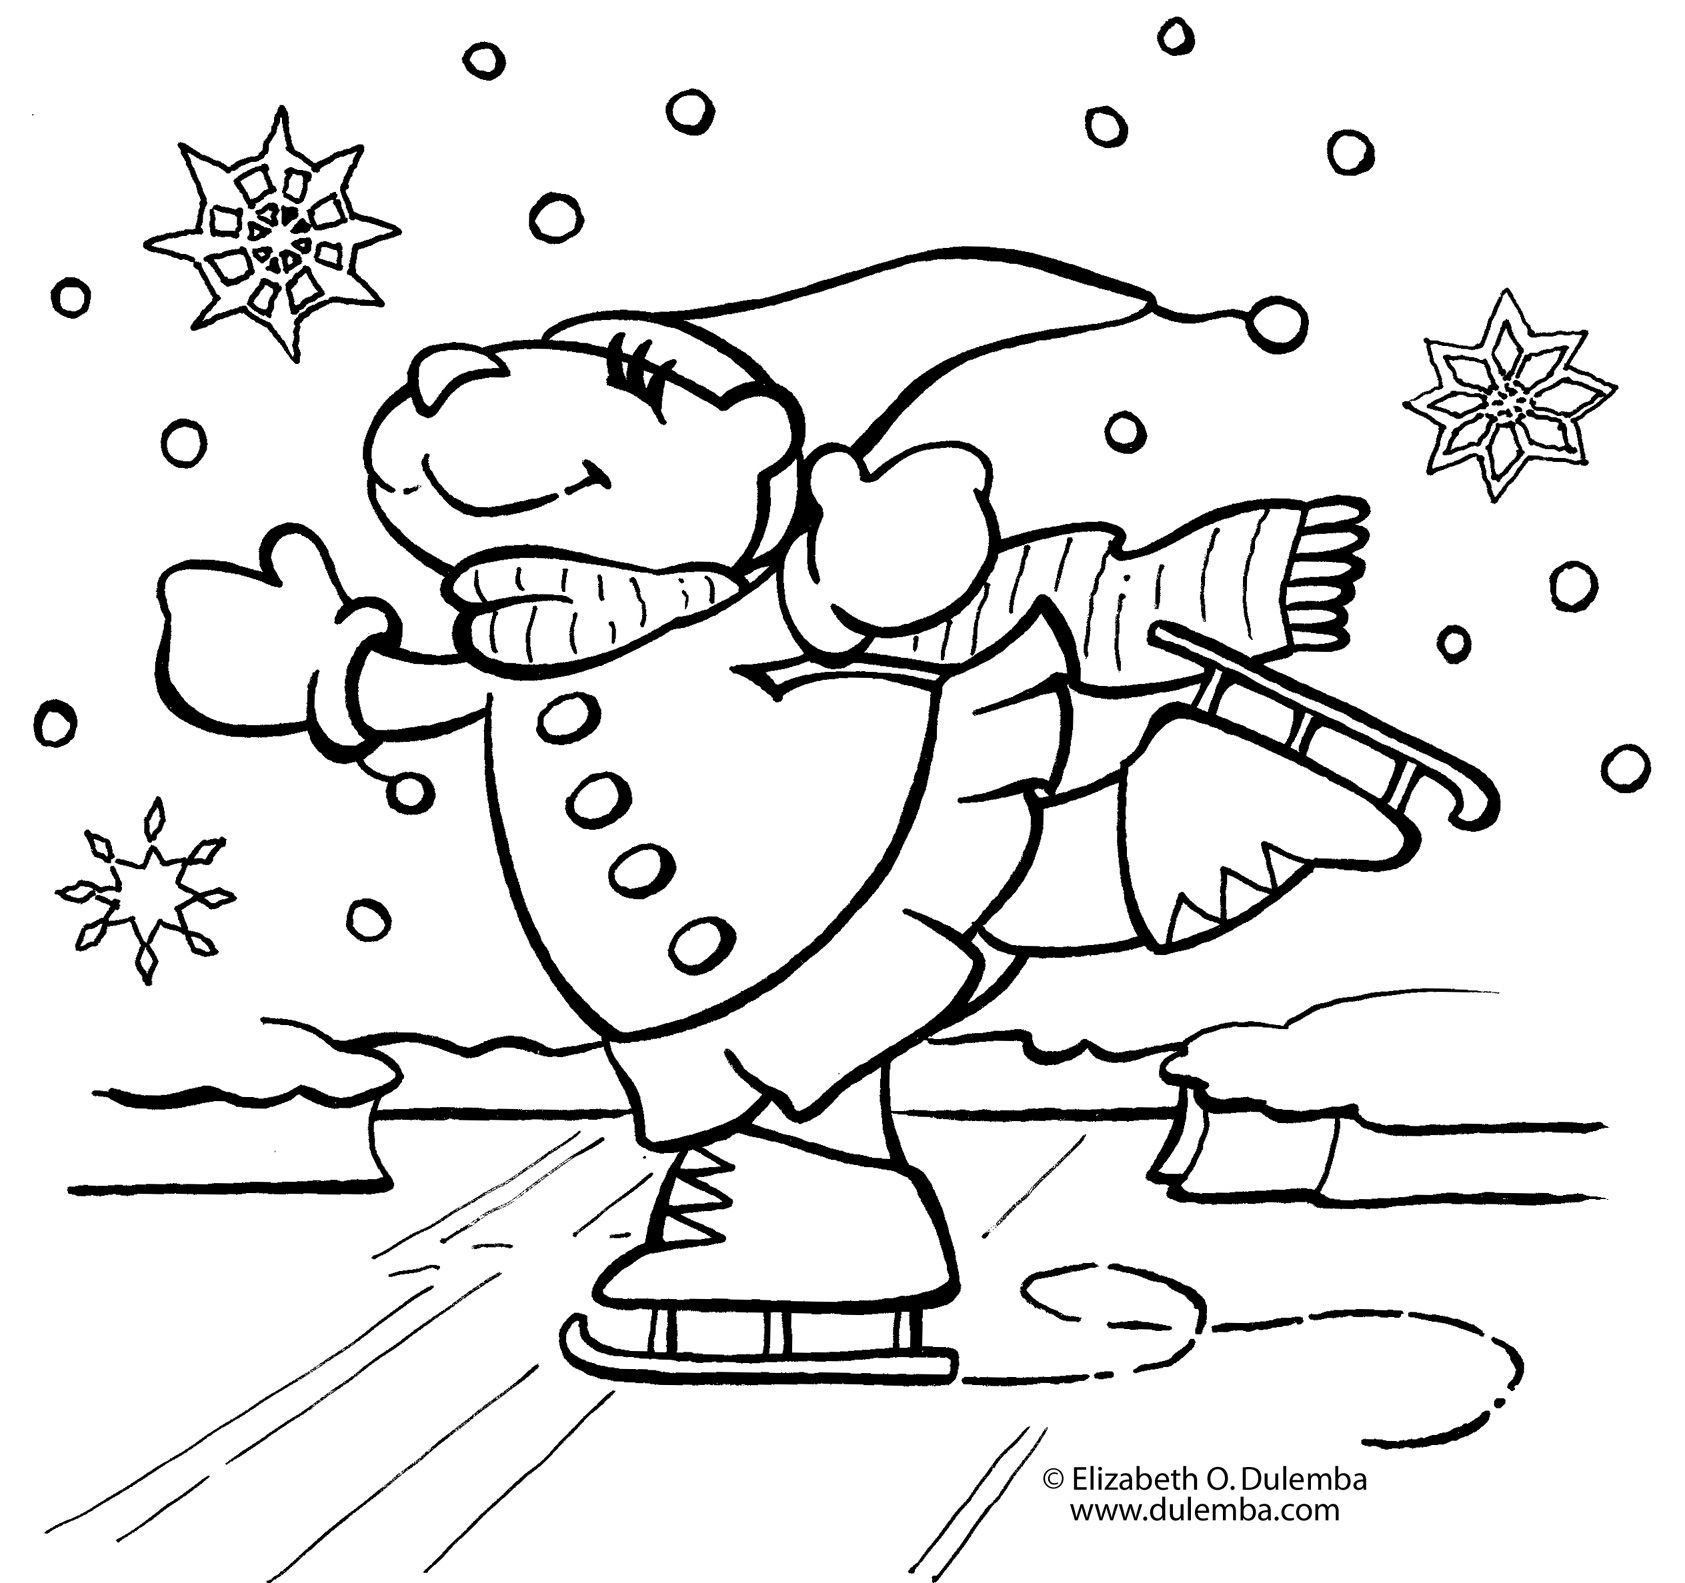 Uncategorized Snowy Day Coloring Page adult coloring pages for kindergarten kids preschool winterjanuary page